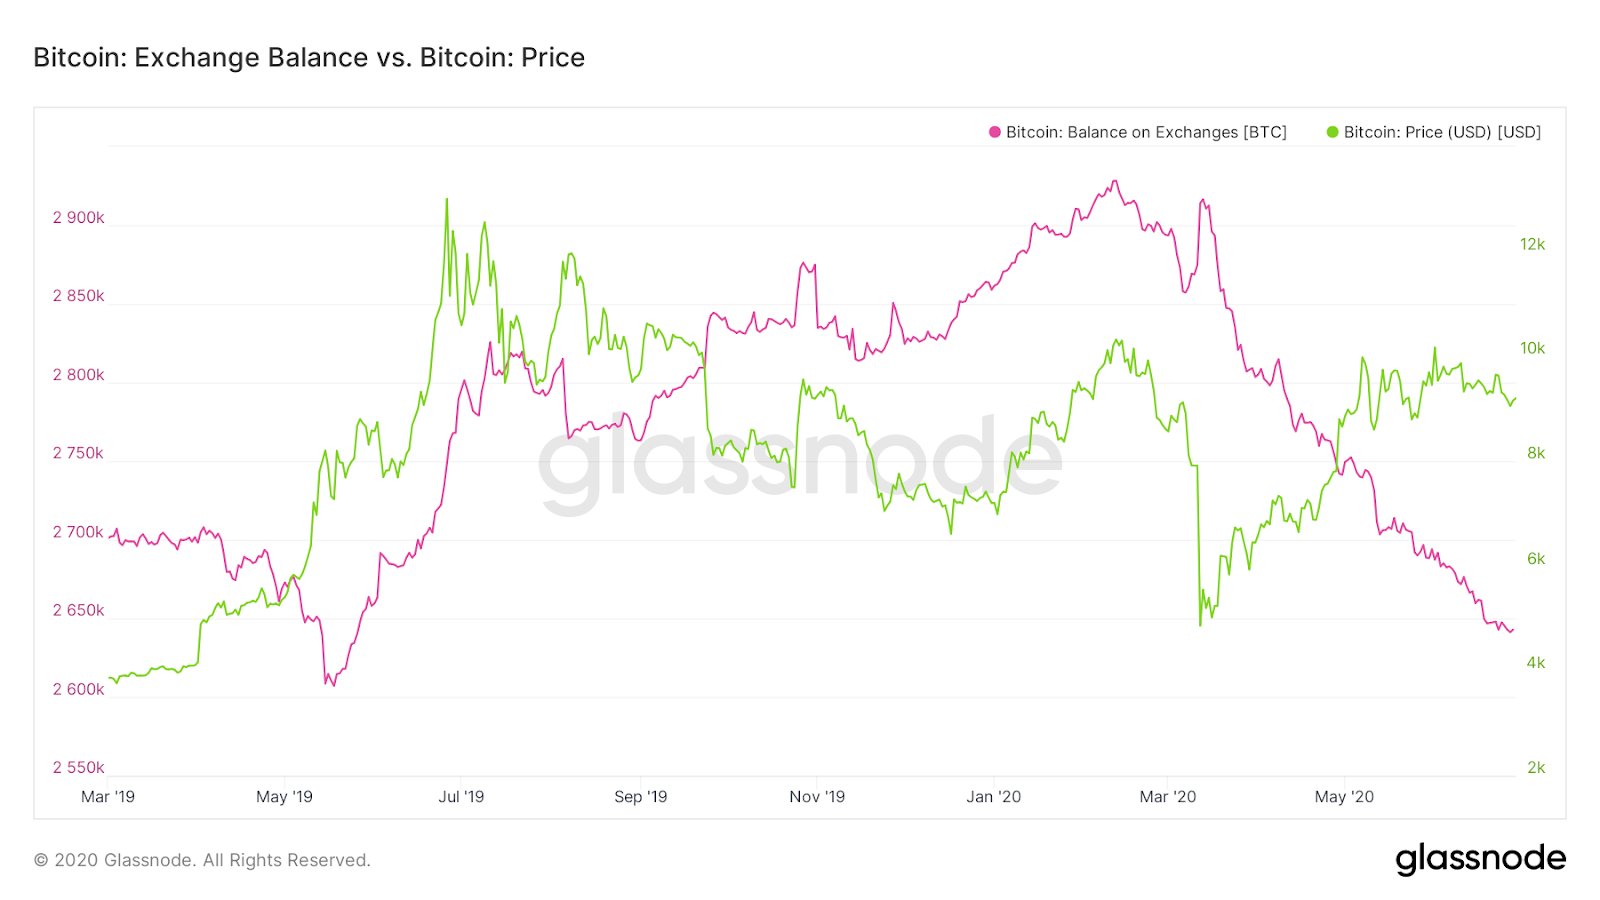 Bitcoin exchange balance vs Bitcoin price